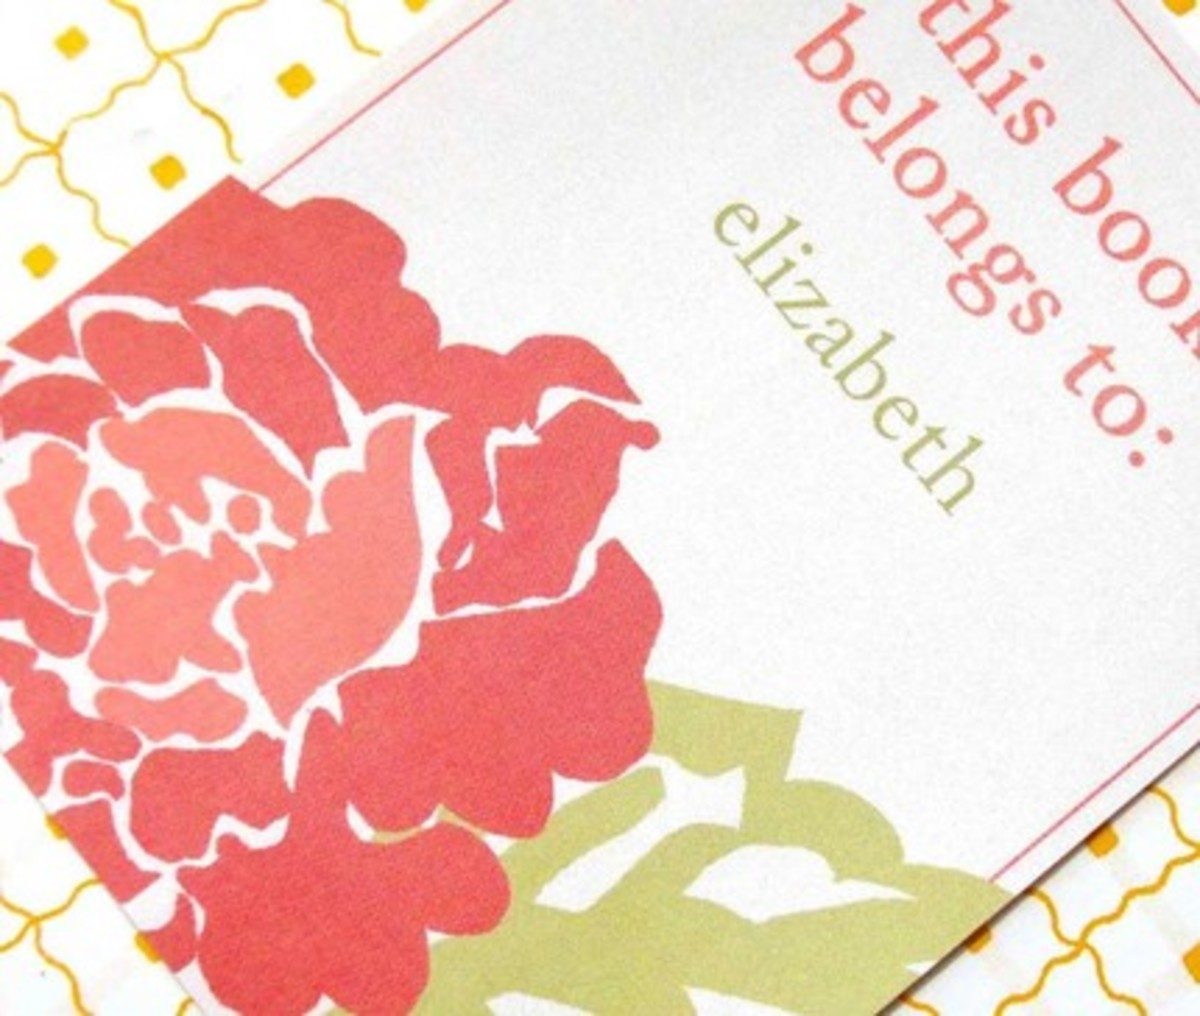 Nelladesigns bookplate from Etsy